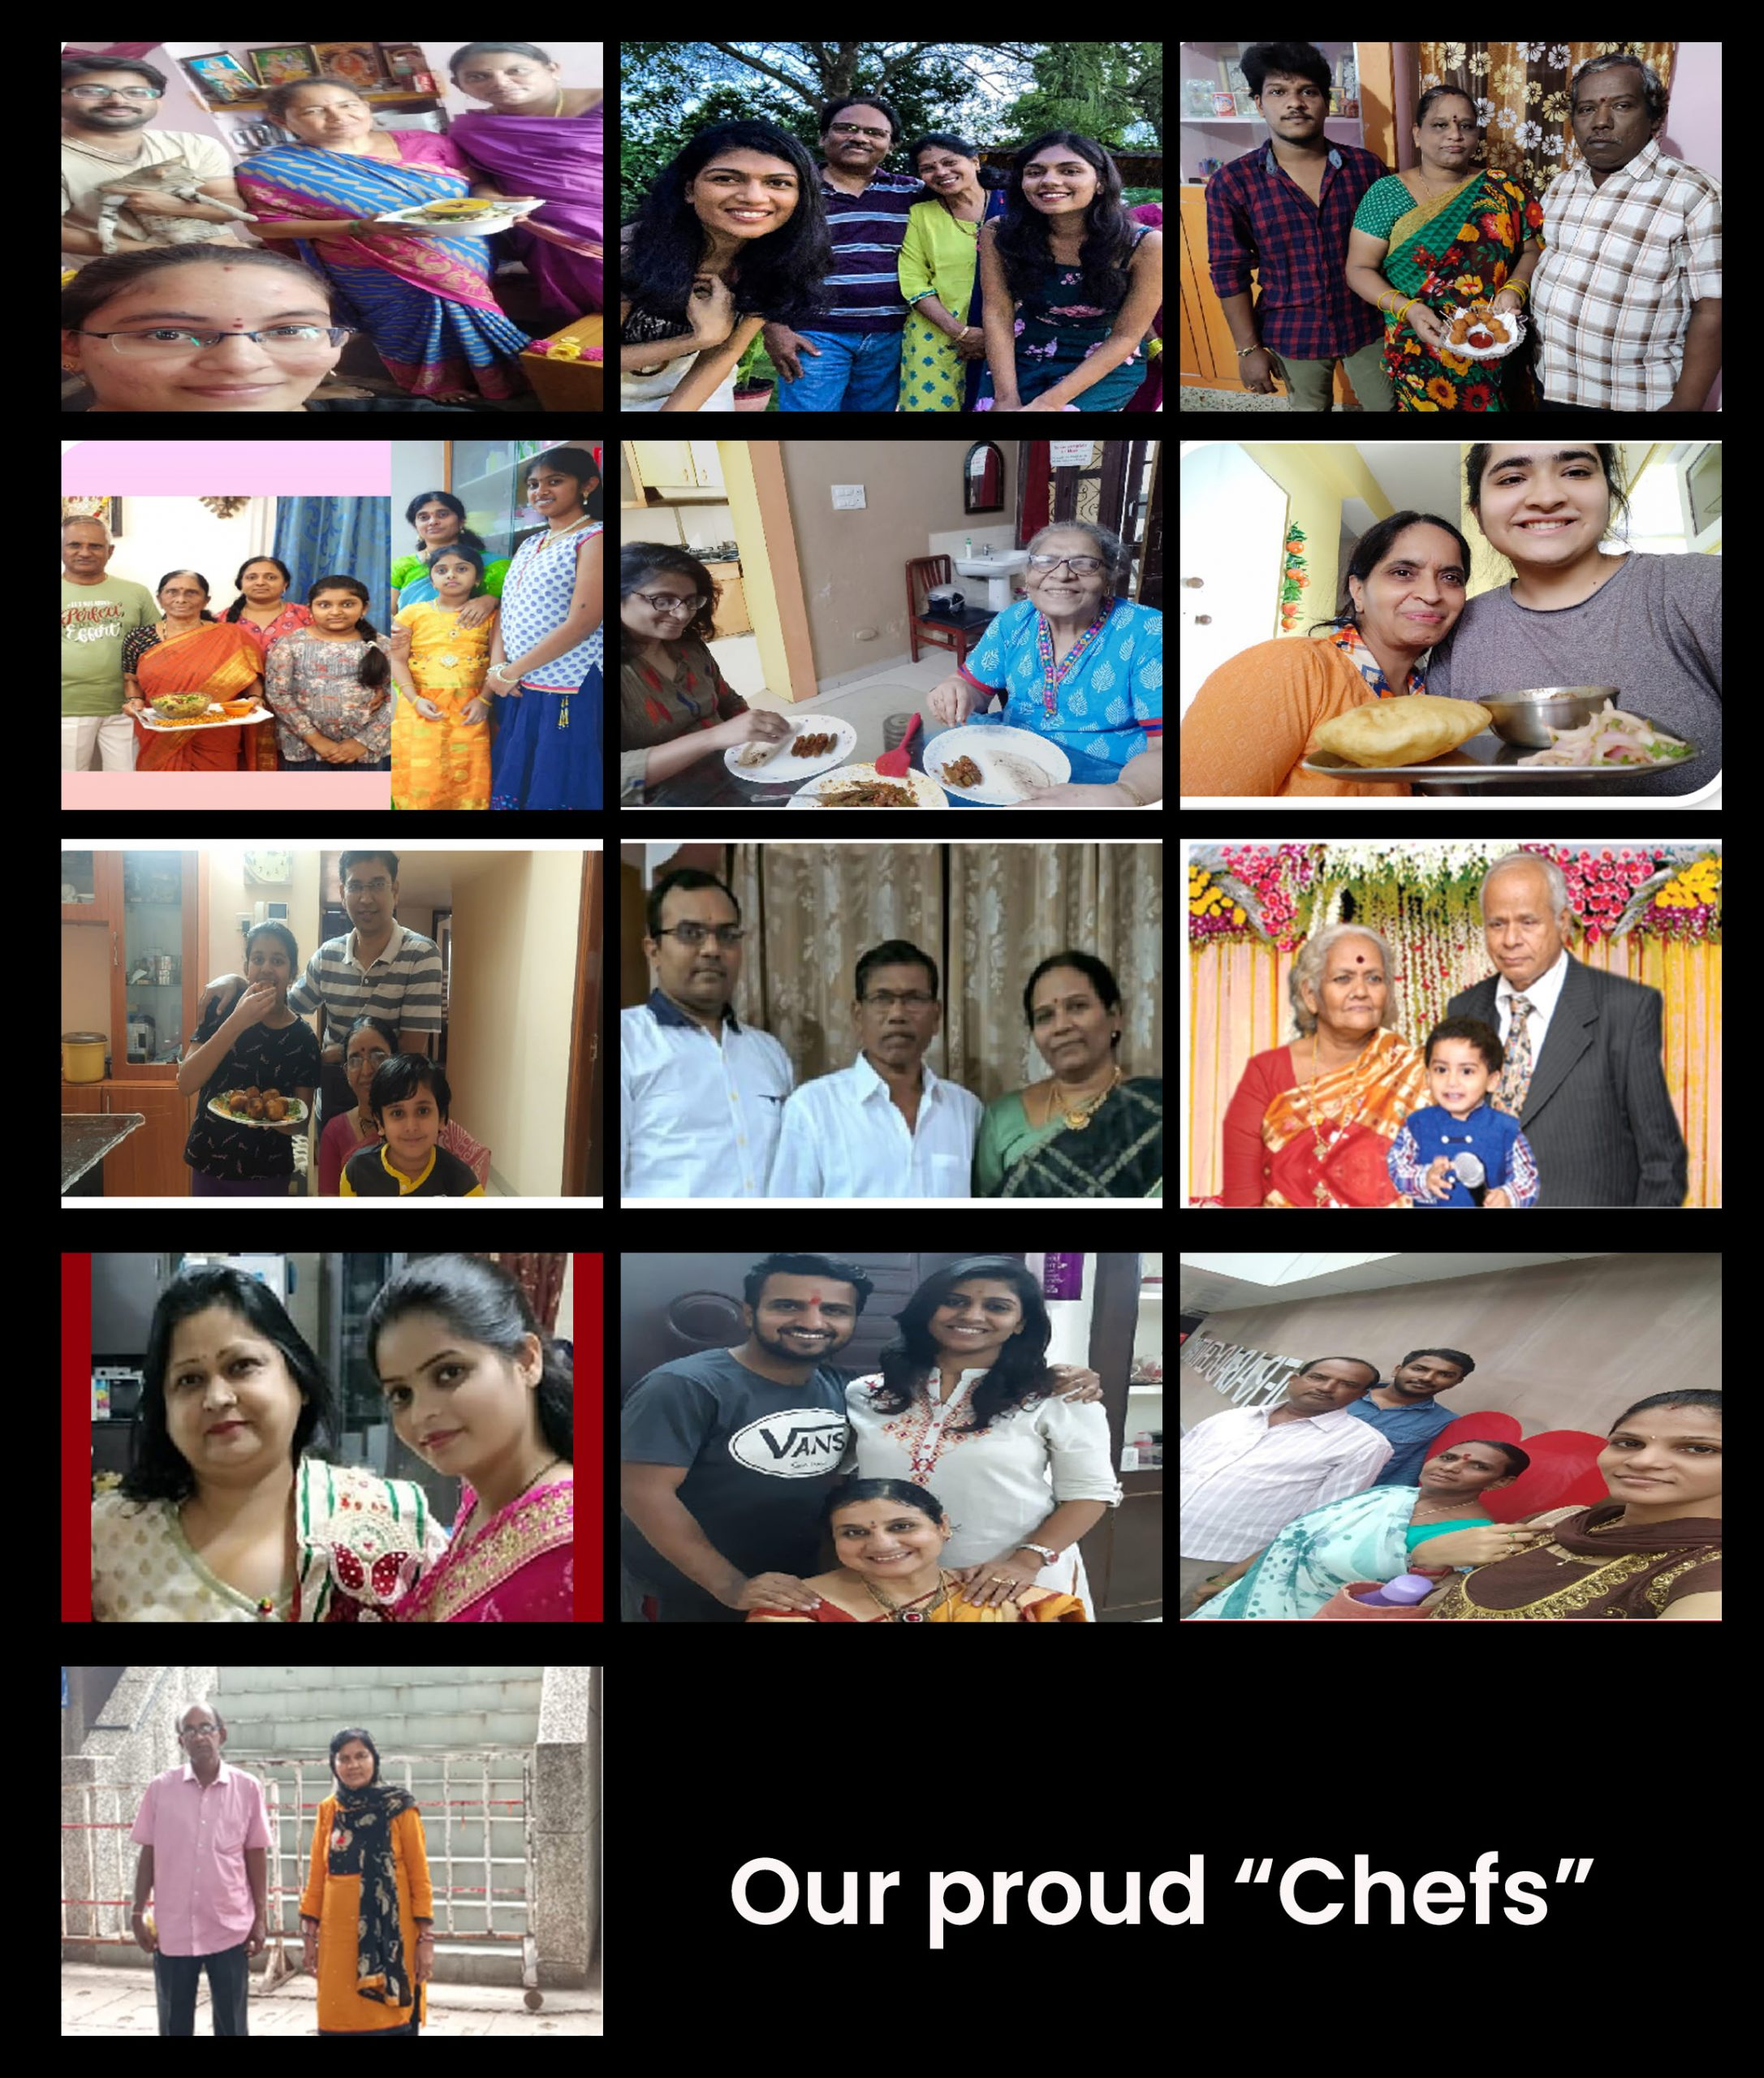 """Our proud """"Chefs"""""""